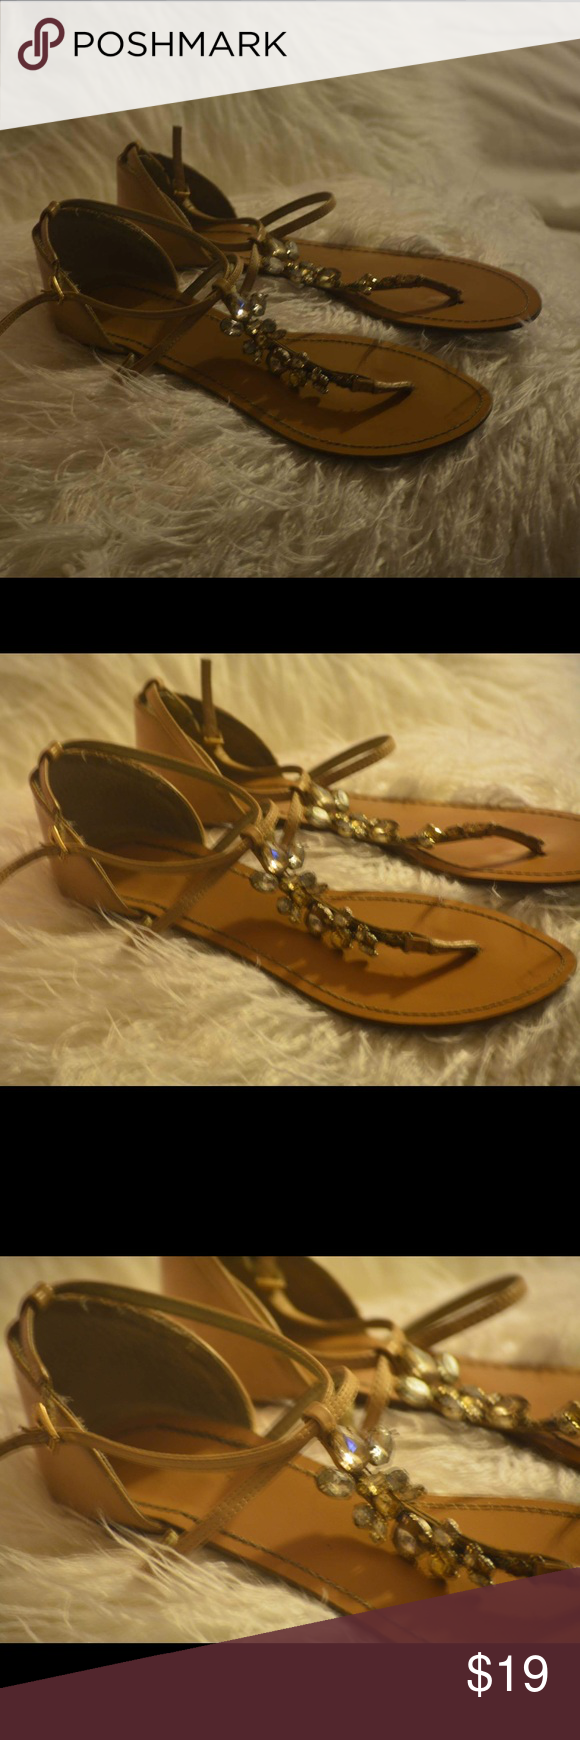 Original Guess sandals They are beautiful and have been used but great condition. I take great care of my items. Such a good deal 8.5 size Shoes Sandals